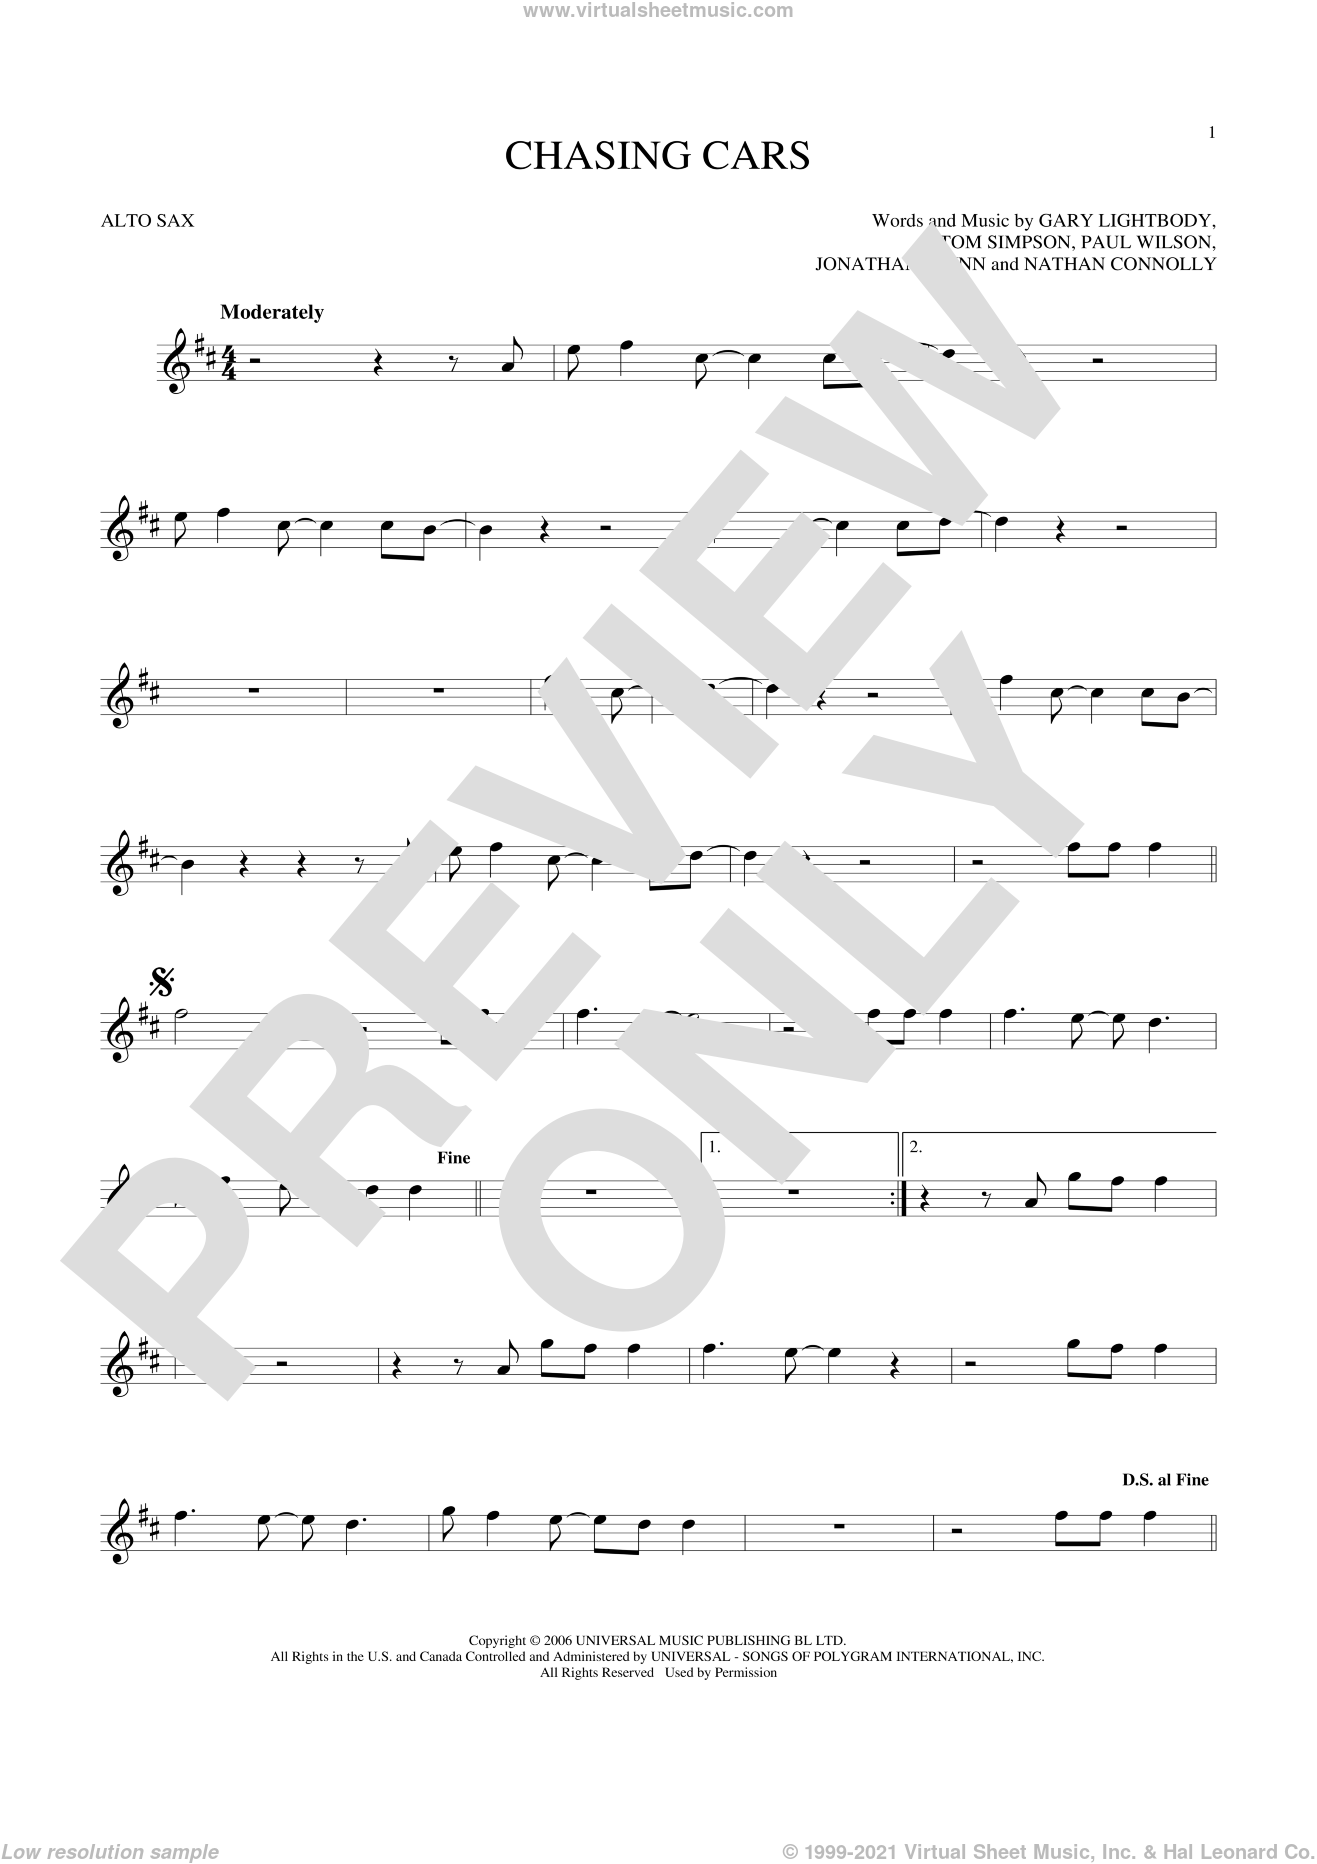 Chasing Cars sheet music for alto saxophone solo by Snow Patrol, Gary Lightbody, Jonathan Quinn, Nathan Connolly, Paul Wilson and Tom Simpson, intermediate skill level